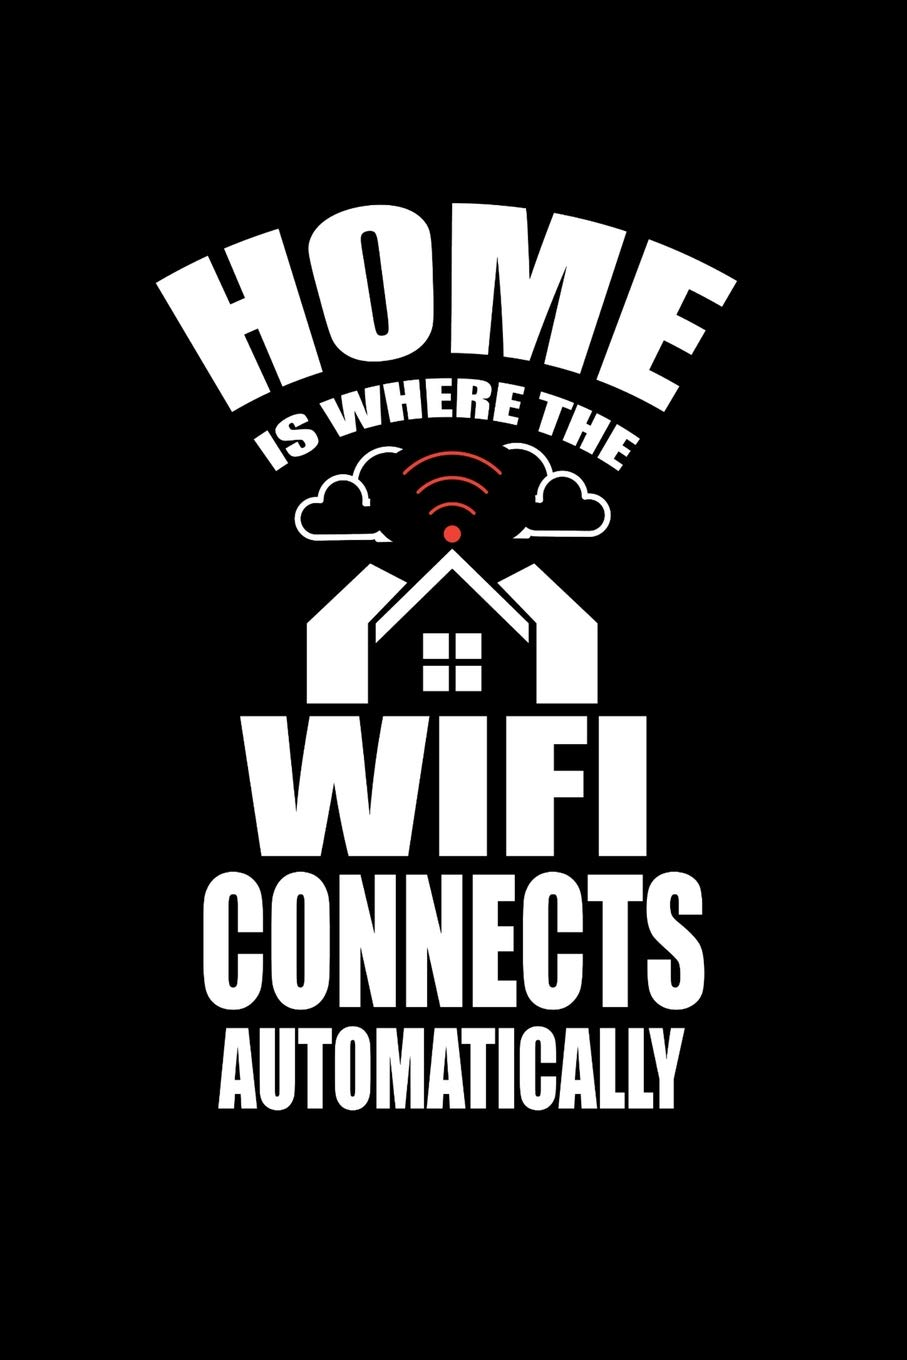 Home is where the Wifi Connects Automatically: Internet Down